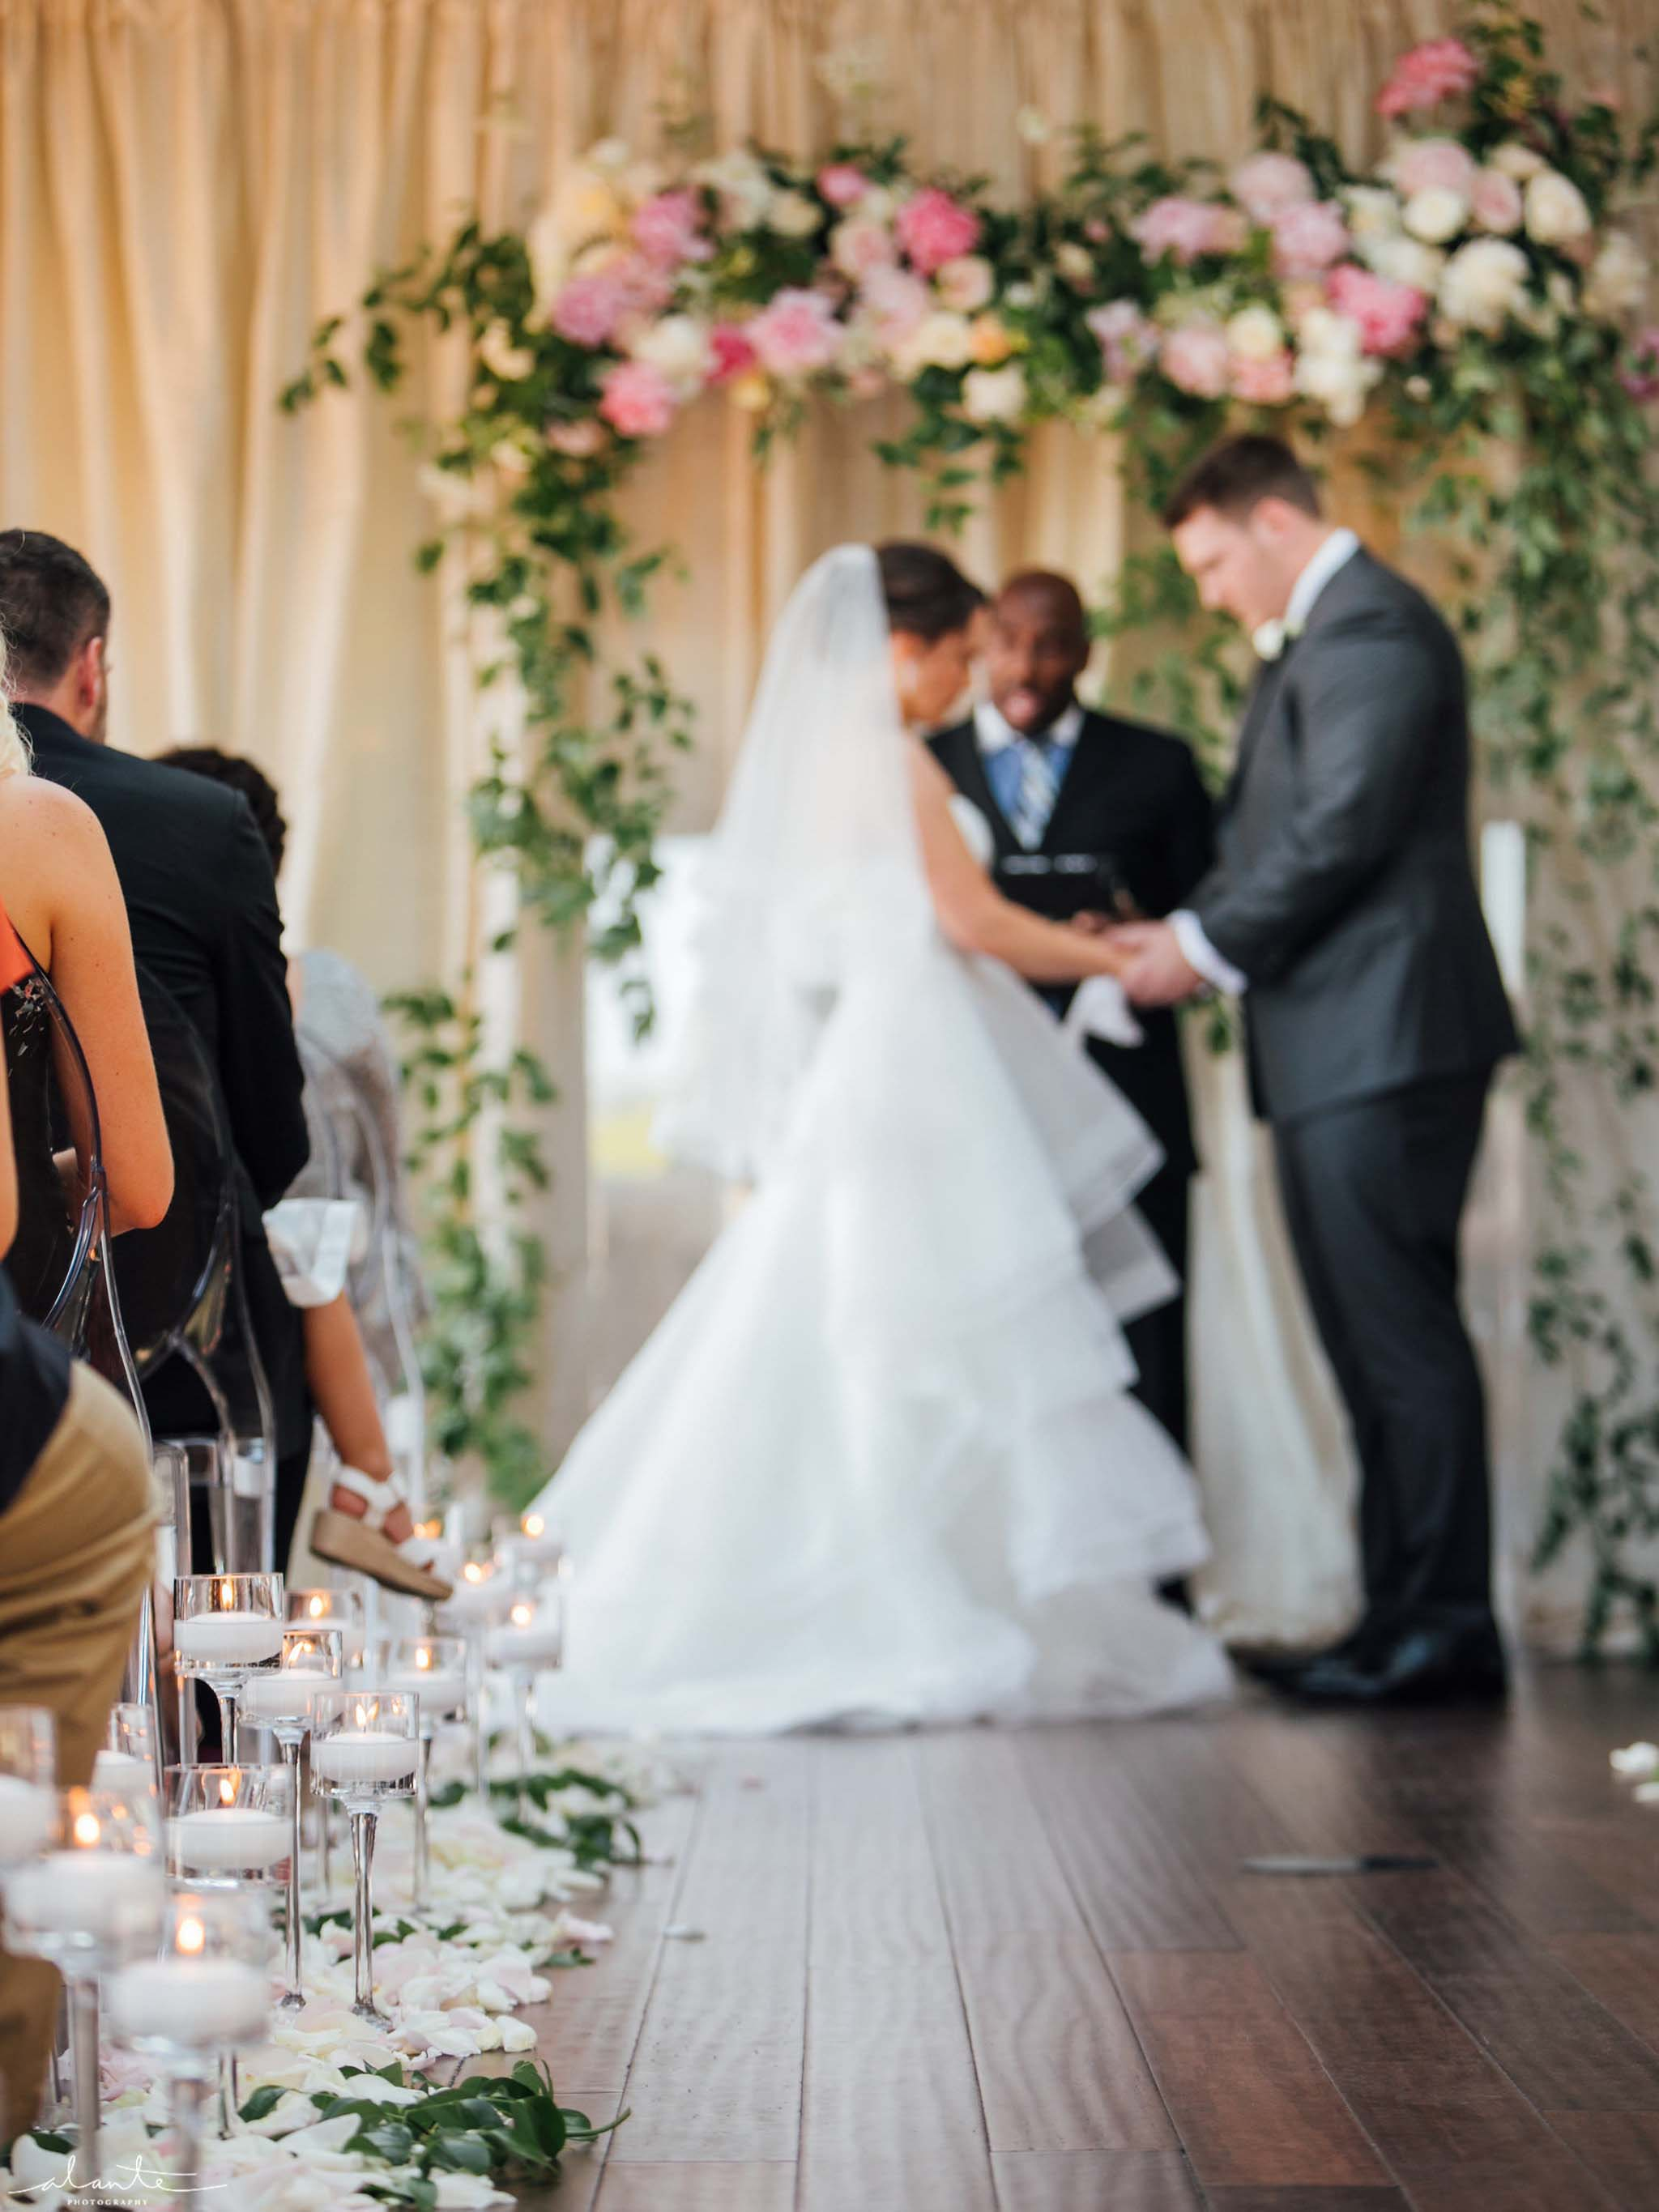 Bride and groom - Olympic Rooftop Pavilion wedding with pink peonies by Flora Nova Design Seattle